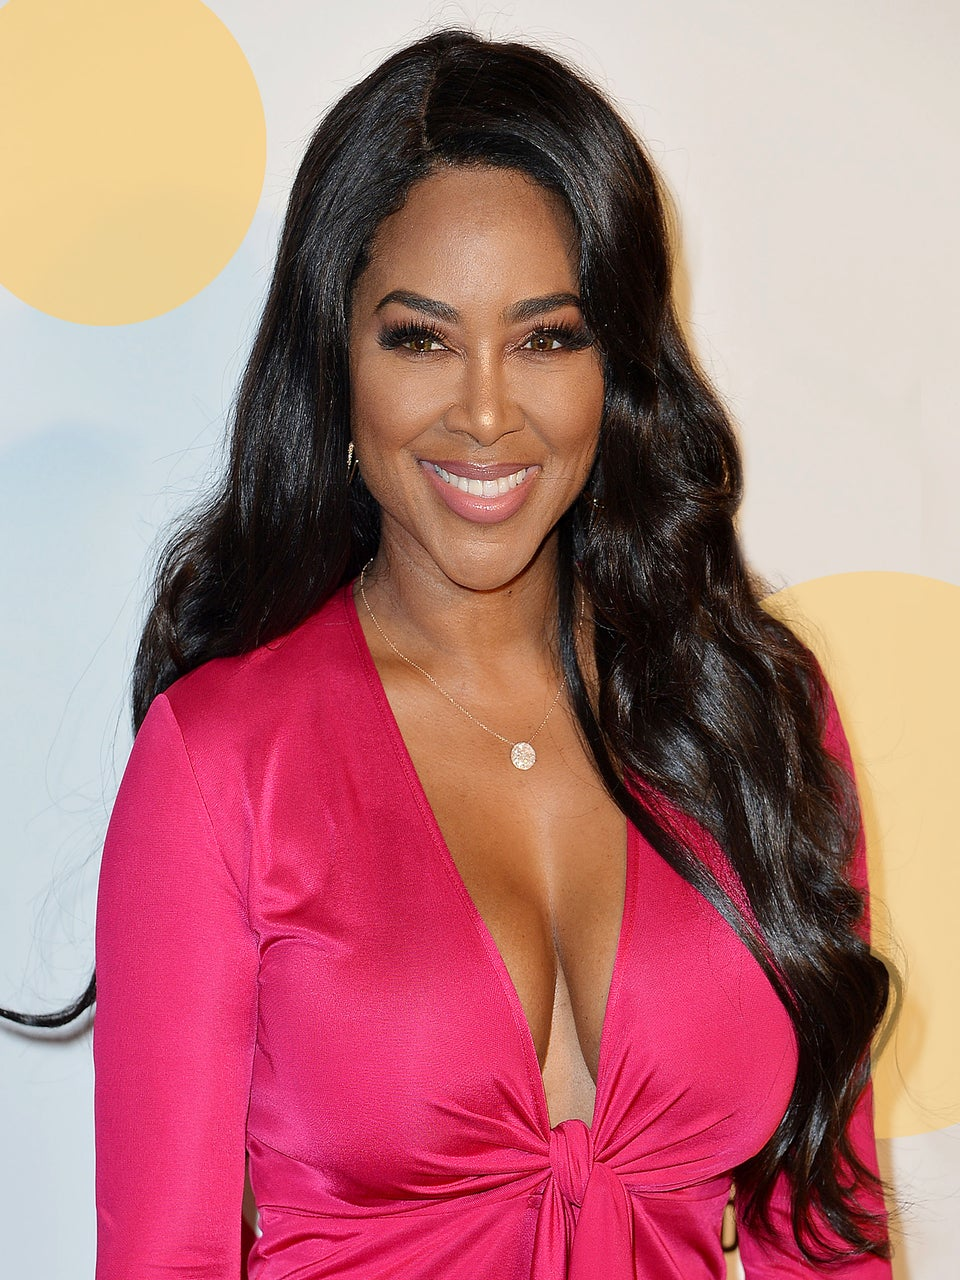 Snatched! Kenya Moore Shows Off Post-Baby Body 3 Weeks After Giving Birth